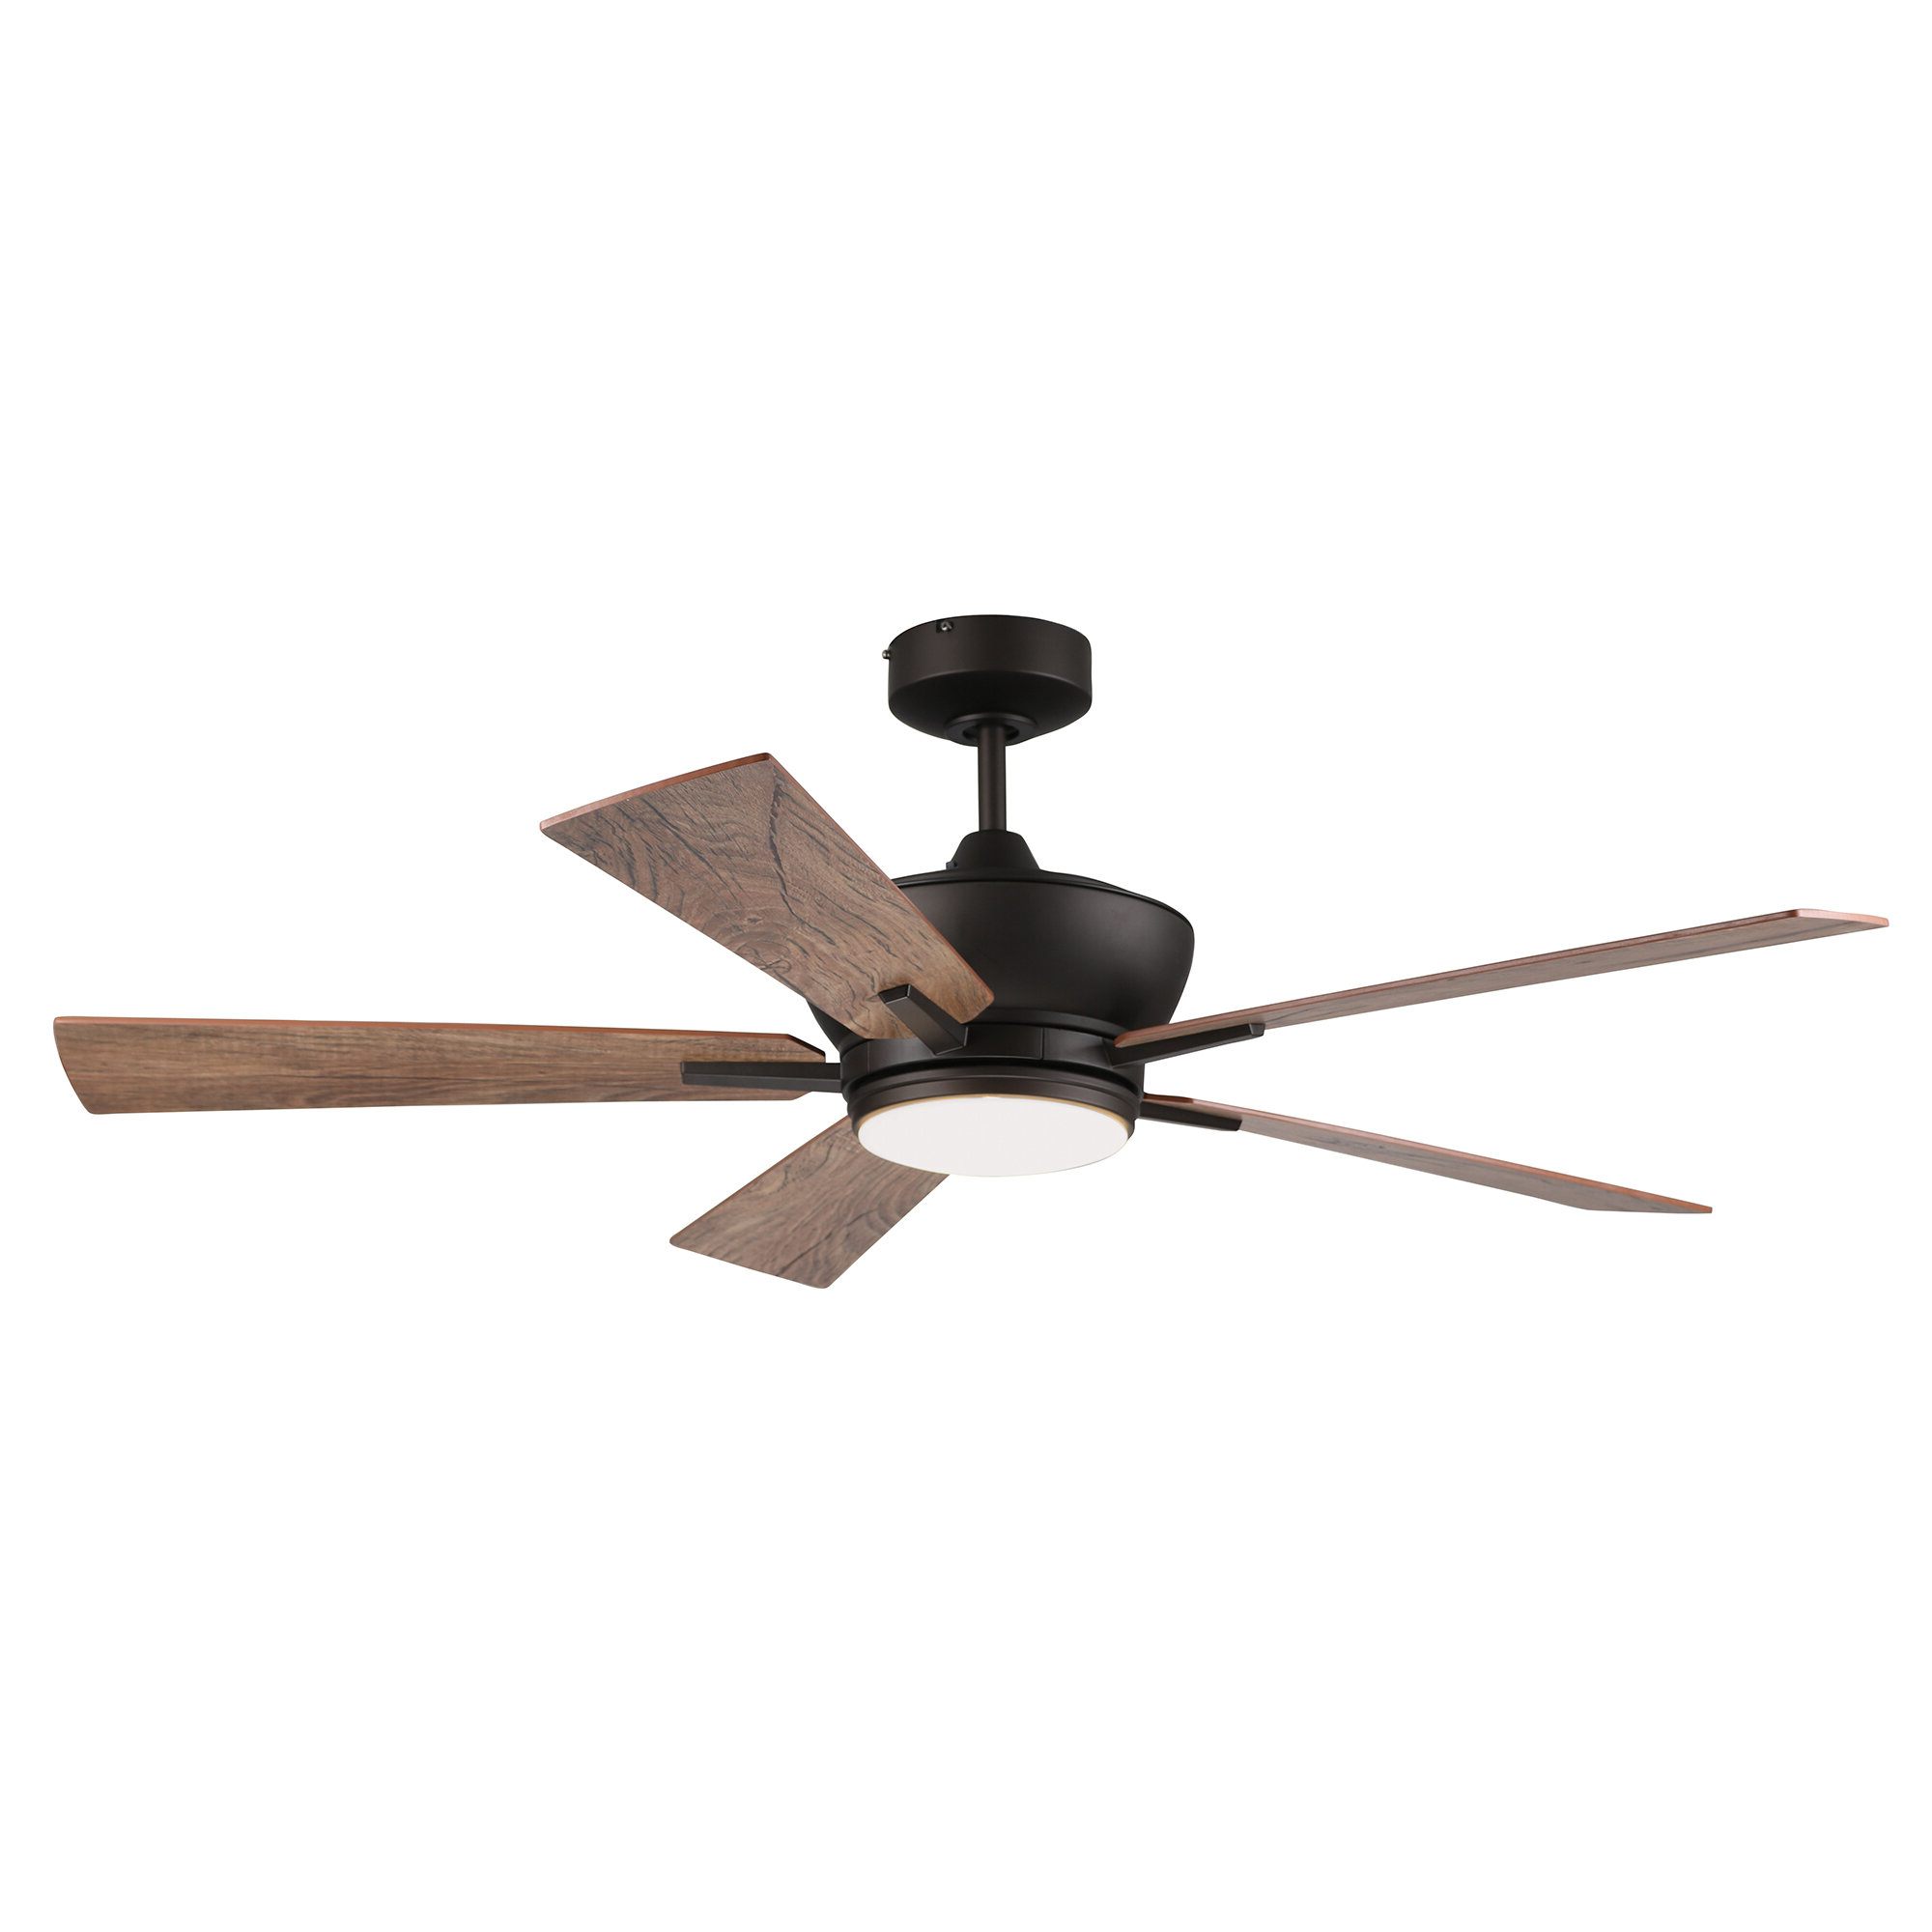 """2020 Sudie 5 Blade Led Ceiling Fans Inside 52"""" Georgetown Tri Mount 5 Blade Ceiling Fan With Remote, Light Kit Included (View 2 of 20)"""